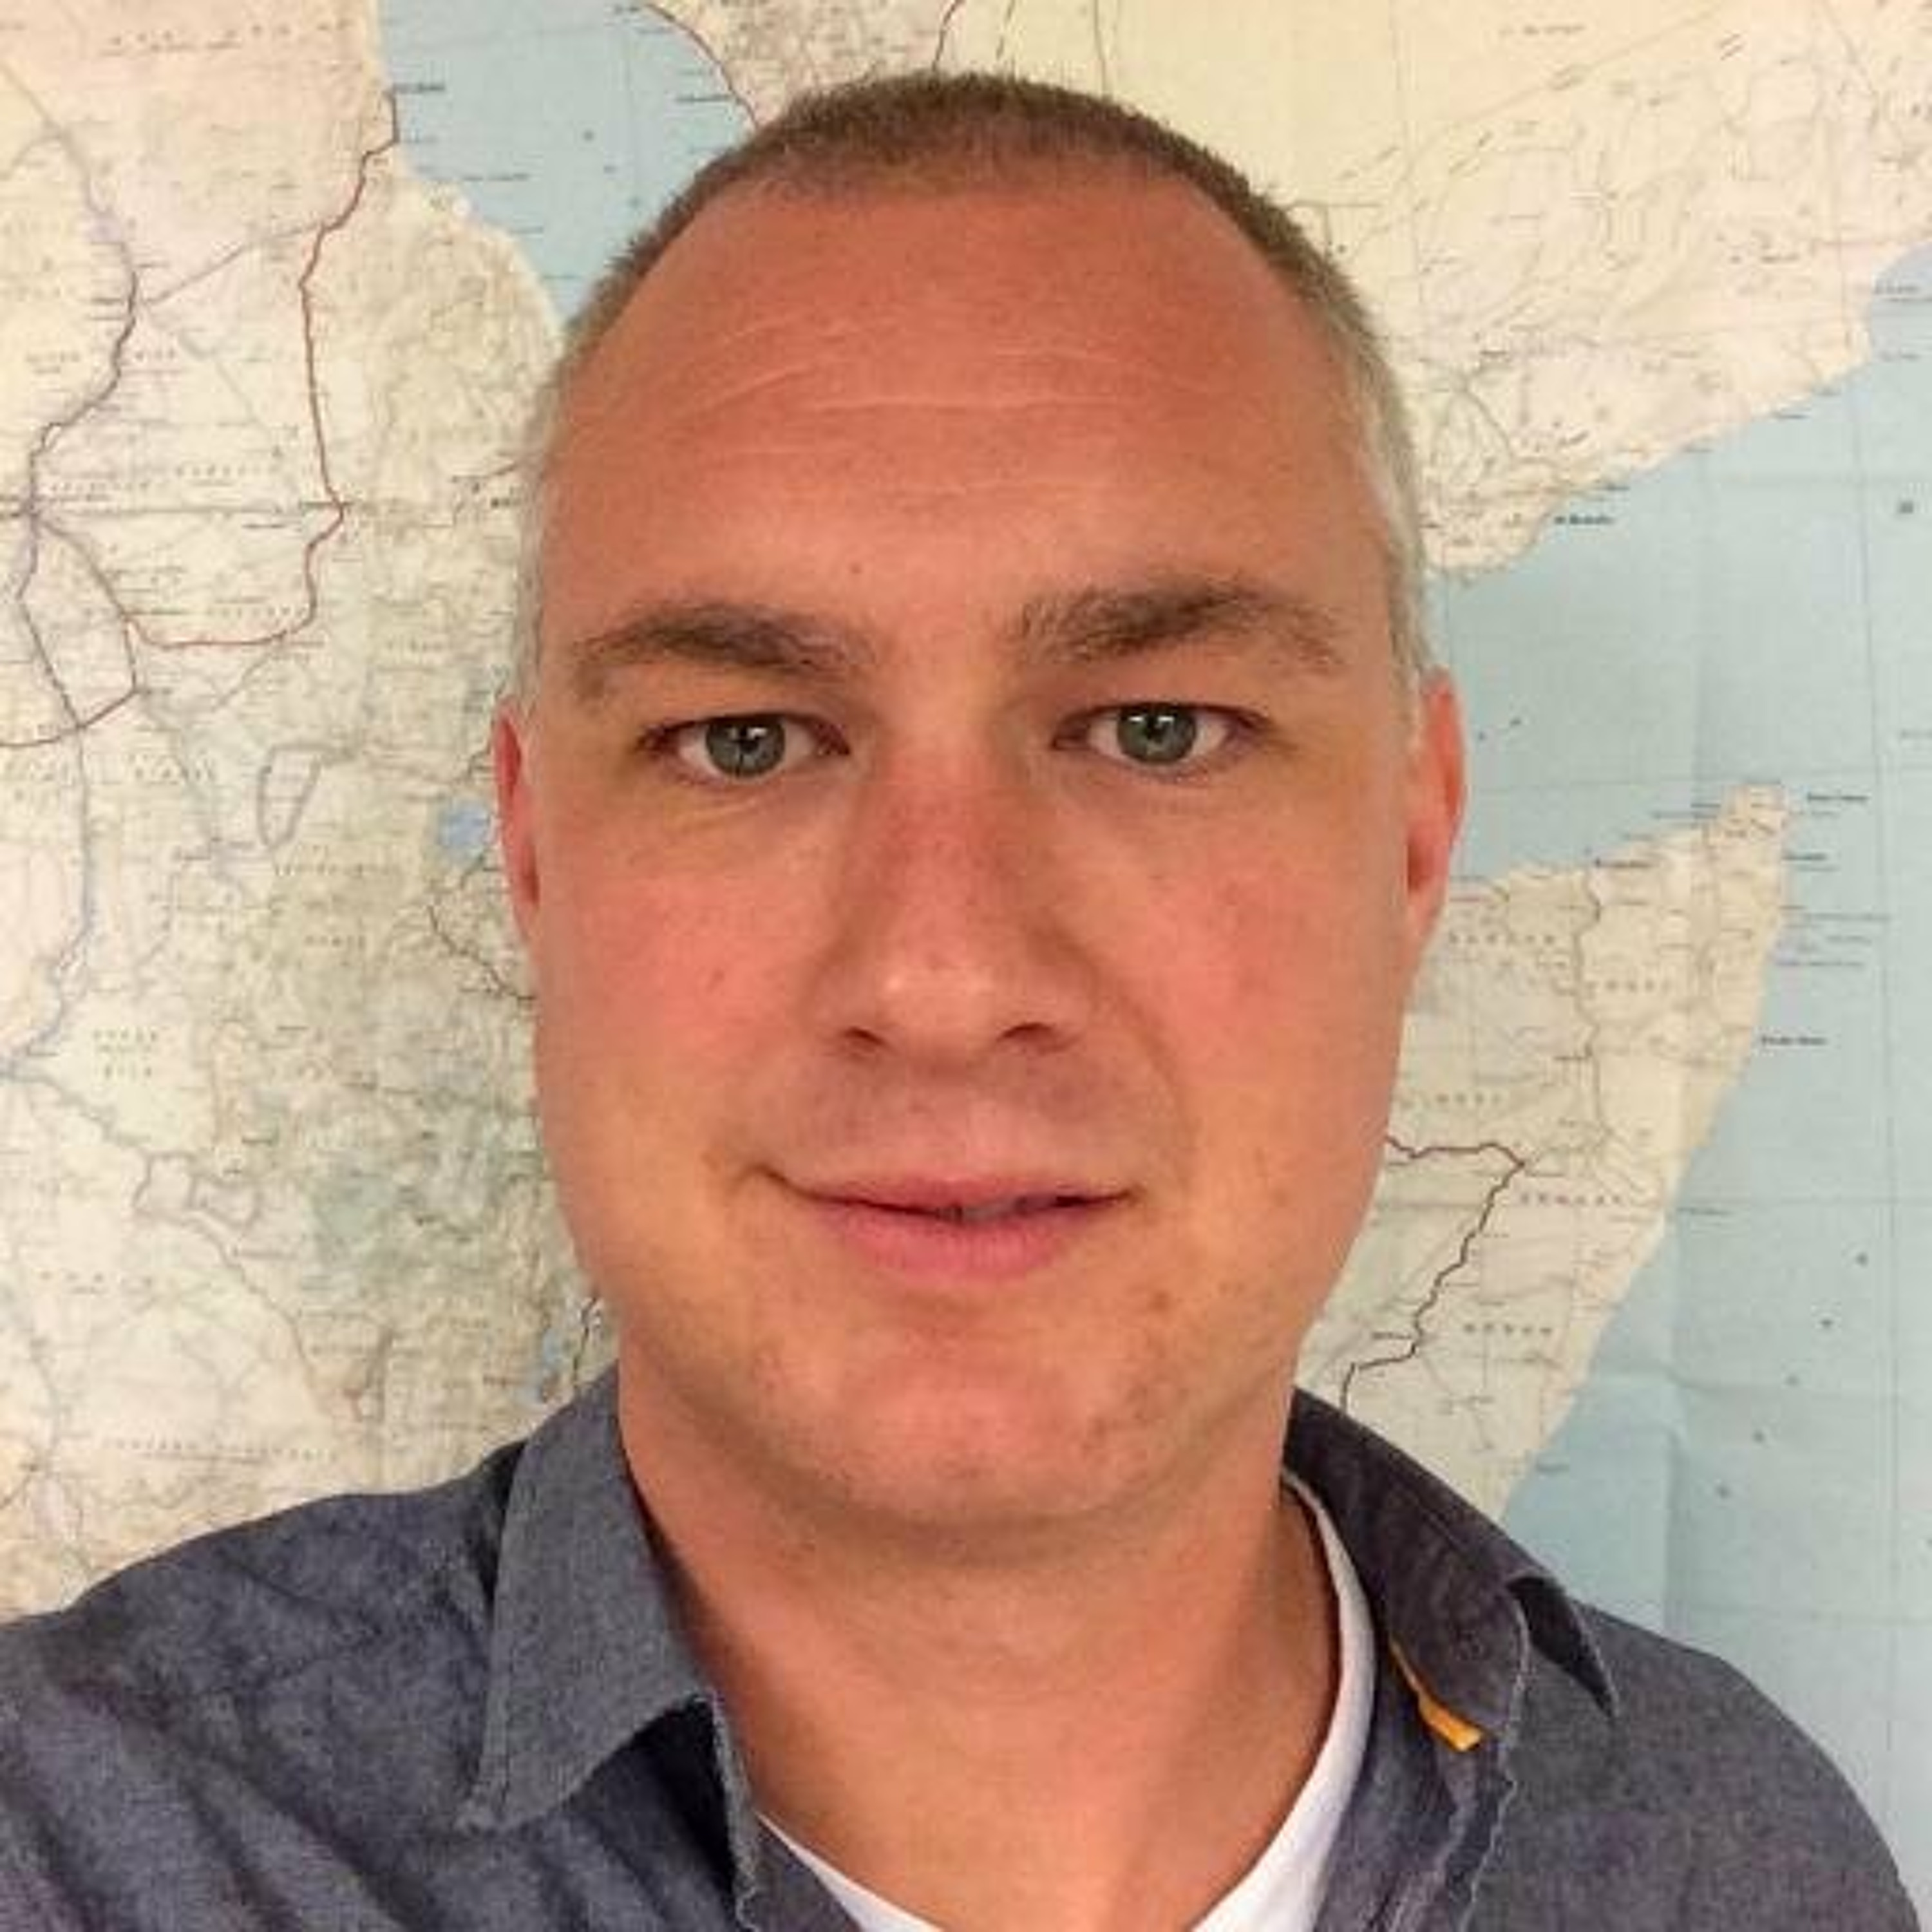 Bertil van Vugt on how VC4Africa's new startup academy is boosting aspiring founders